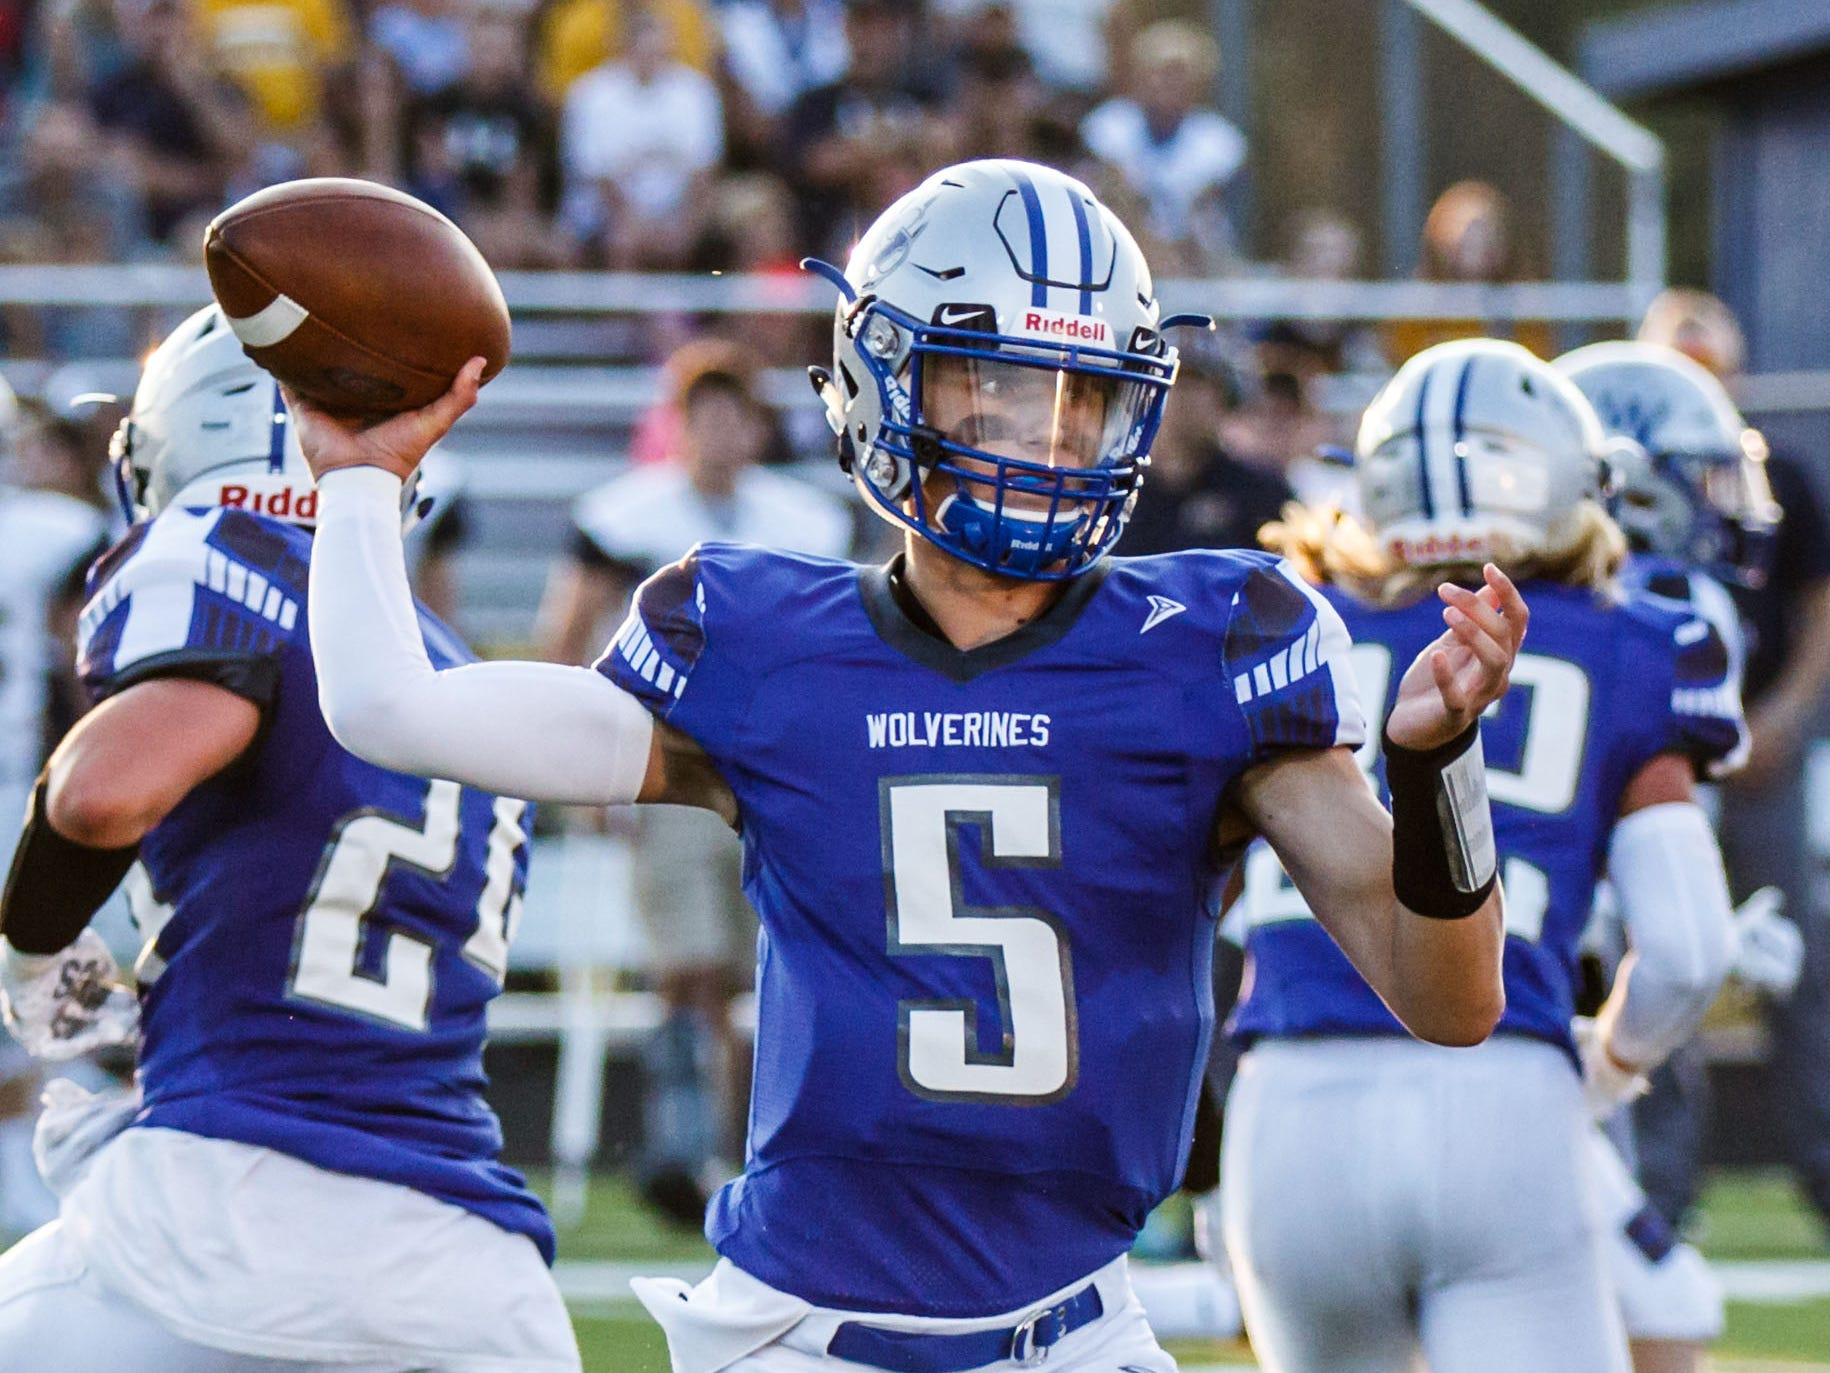 Waukesha West quarterback Brooks Blount gets ready to unleash a pass during the Wolverines' game at home against Kettle Moraine on Friday, August 17, 2018.